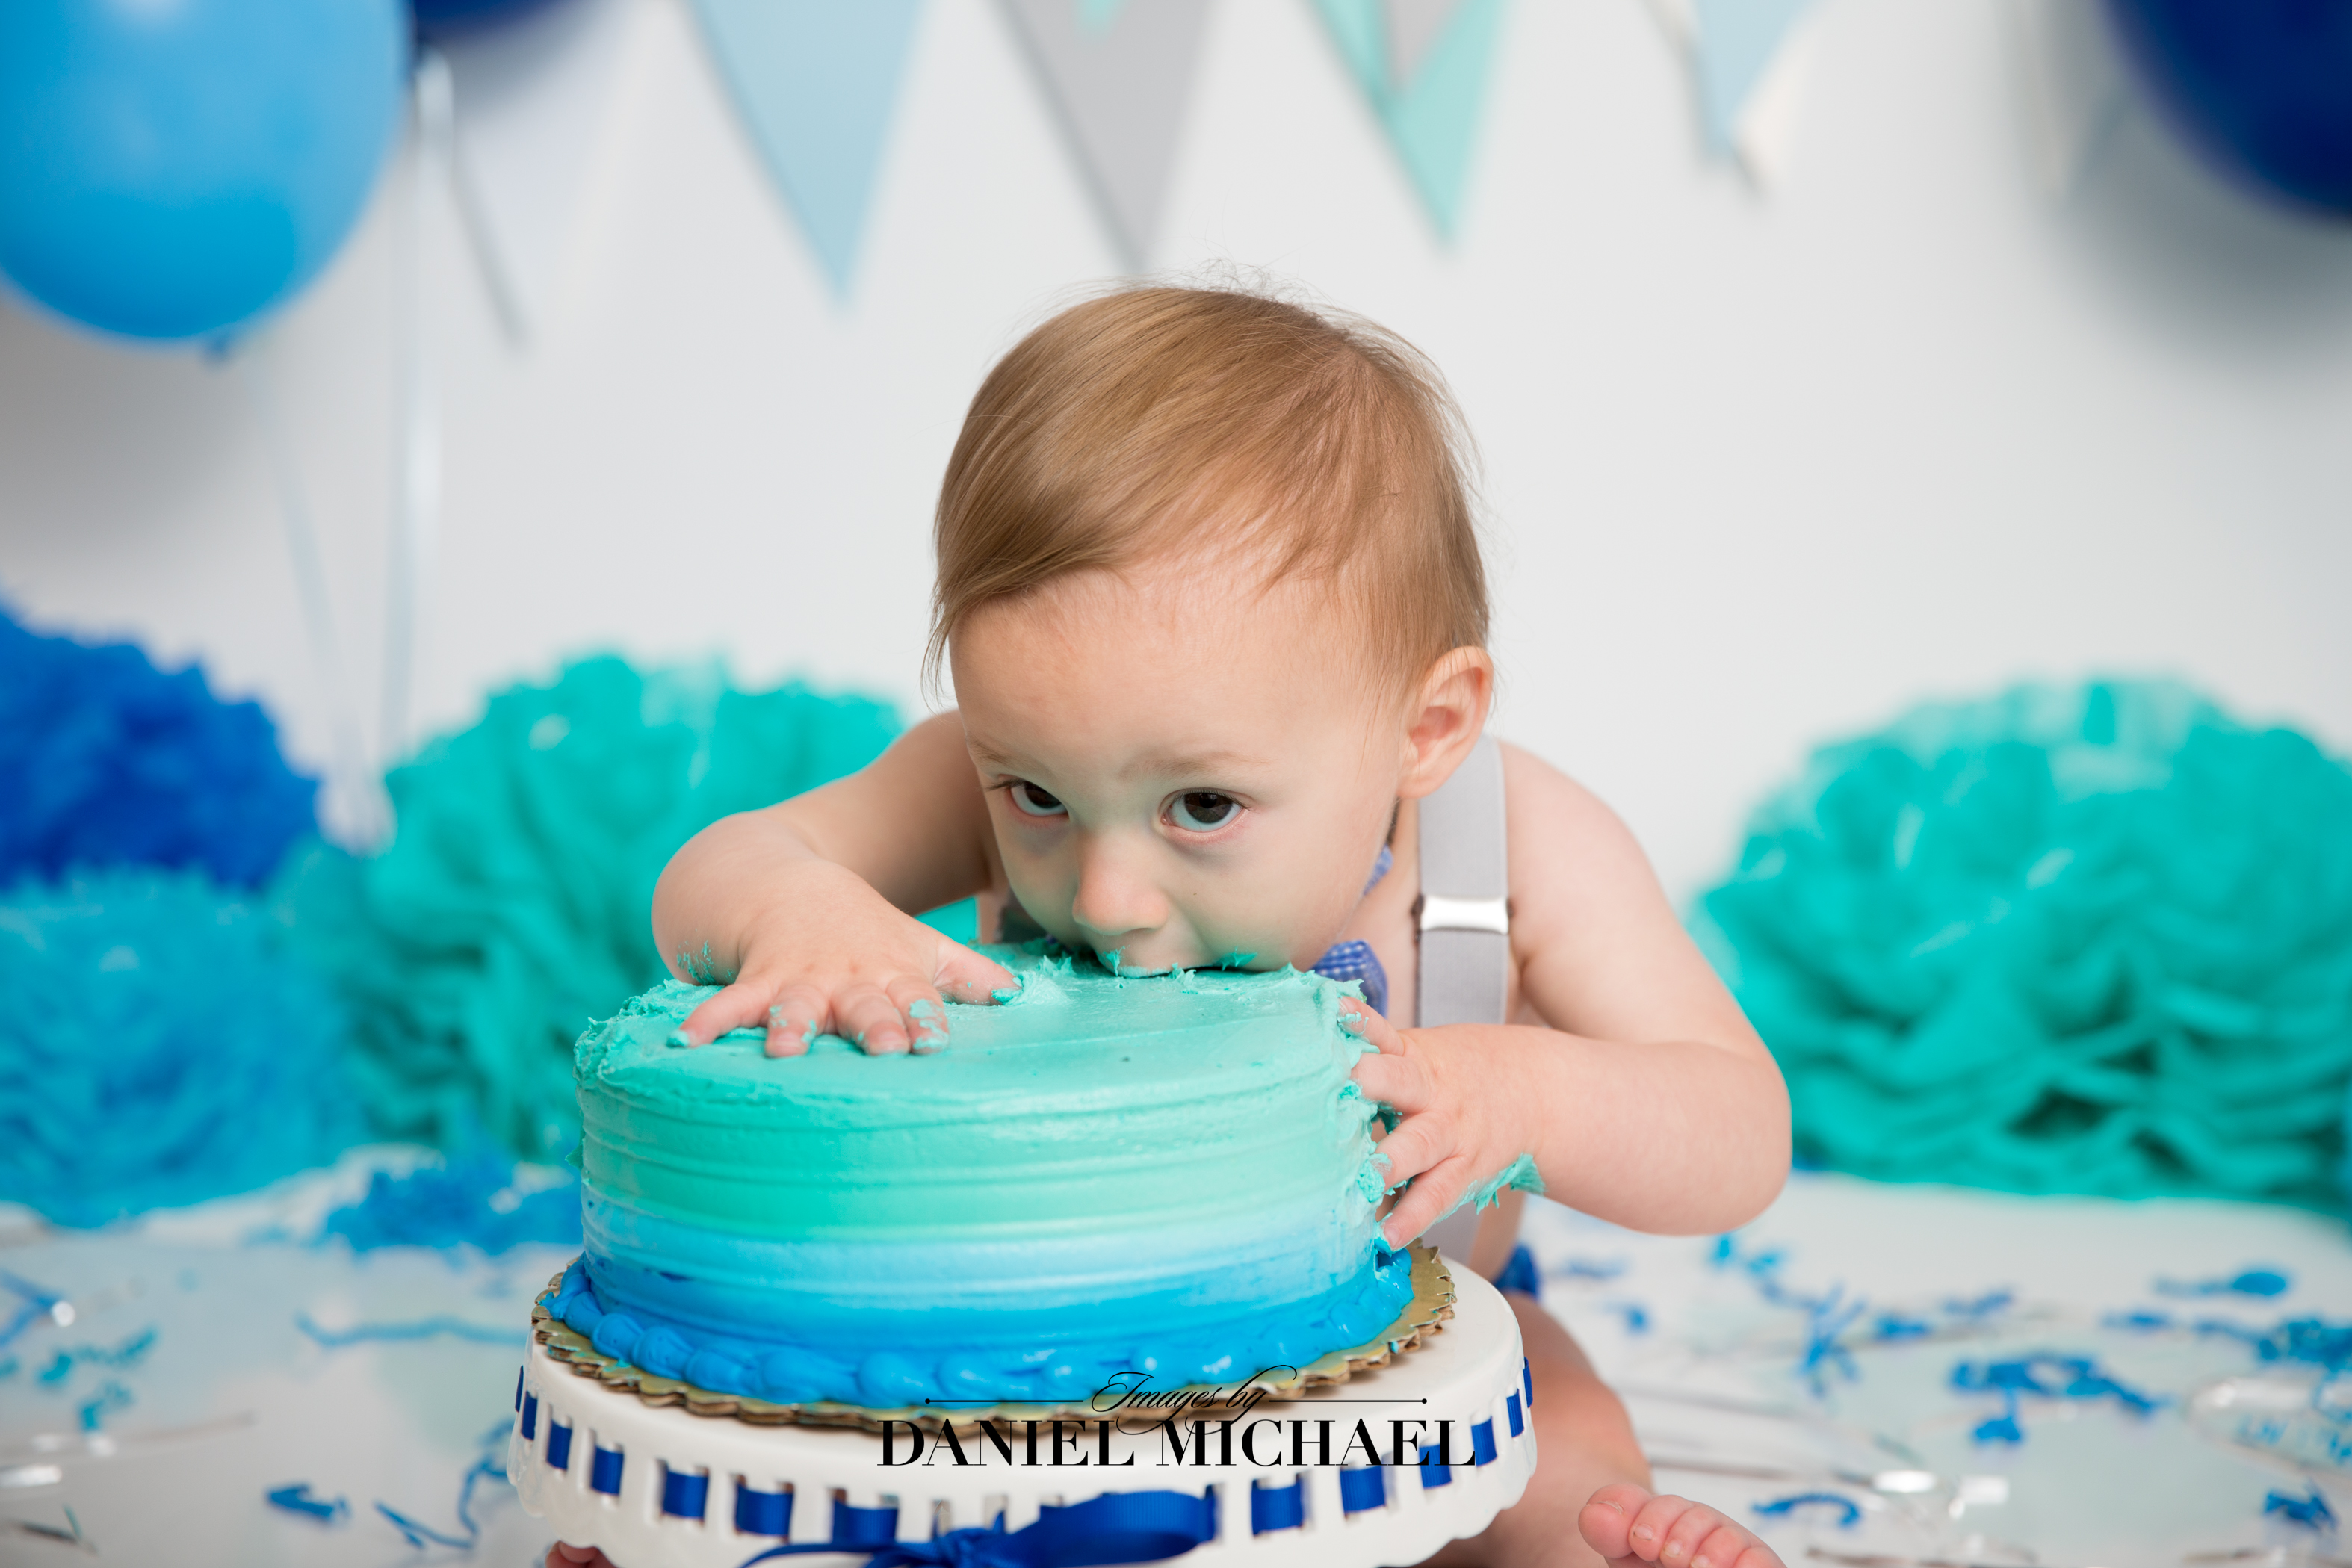 Cincinnati Cake Smash, Studio Portraits, First Birthday Photography, Daniel Michael, Jessica Rist